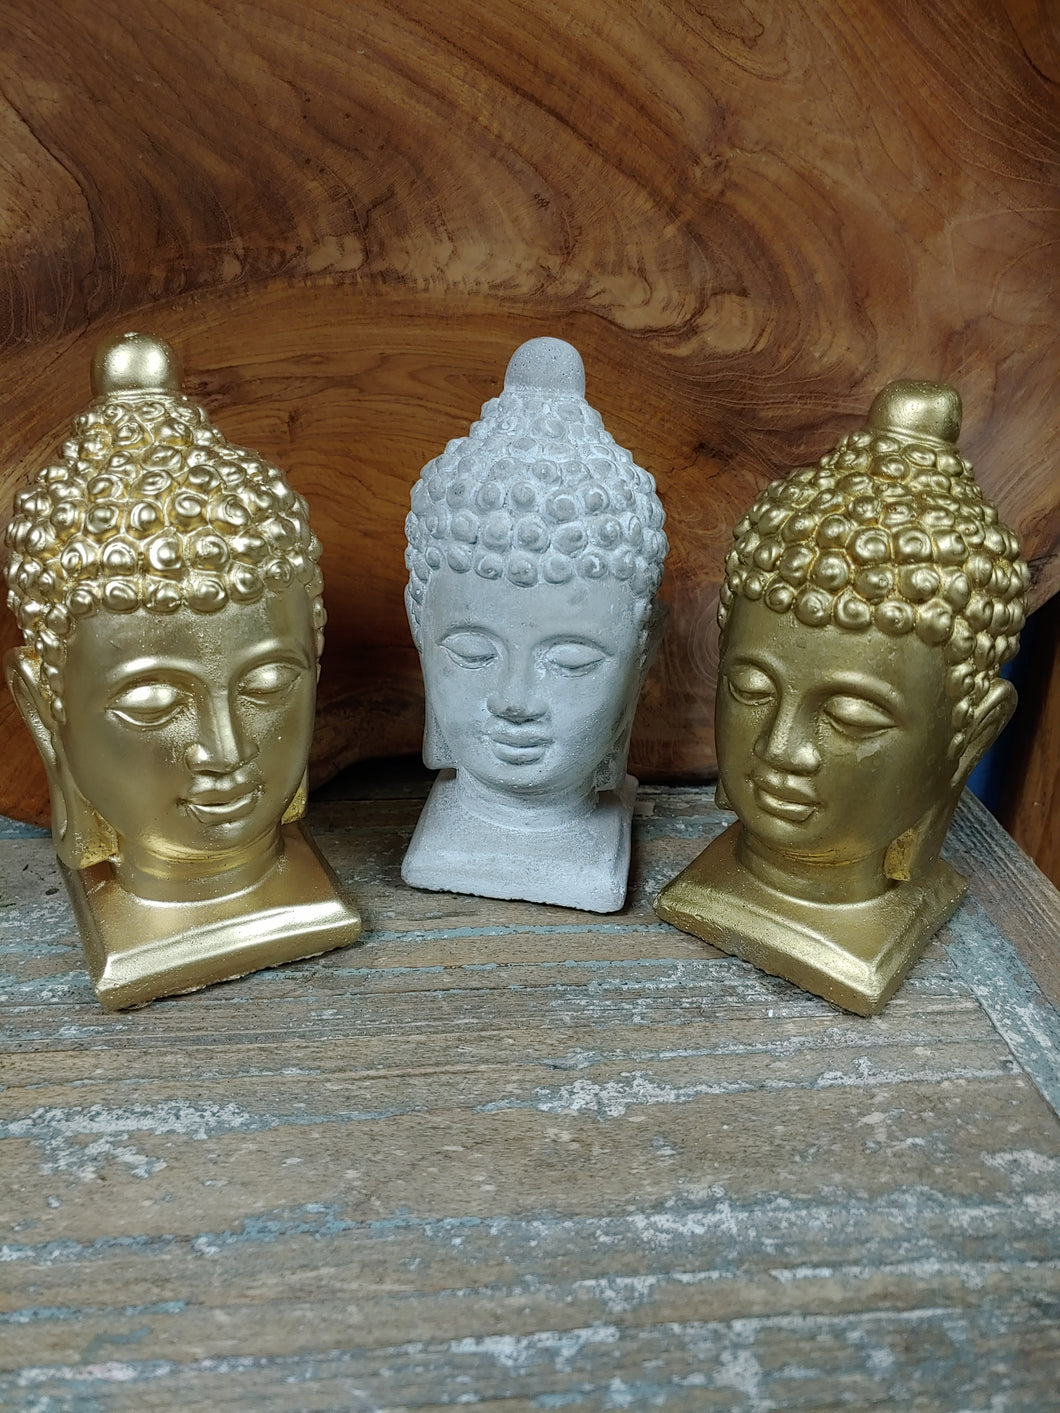 3 SMALL, SOLID CONCRETE BUDDHA HEADS | GREAT DÉCOR ACCENT PIECES. 2 COLORS: GREY AND GOLD.